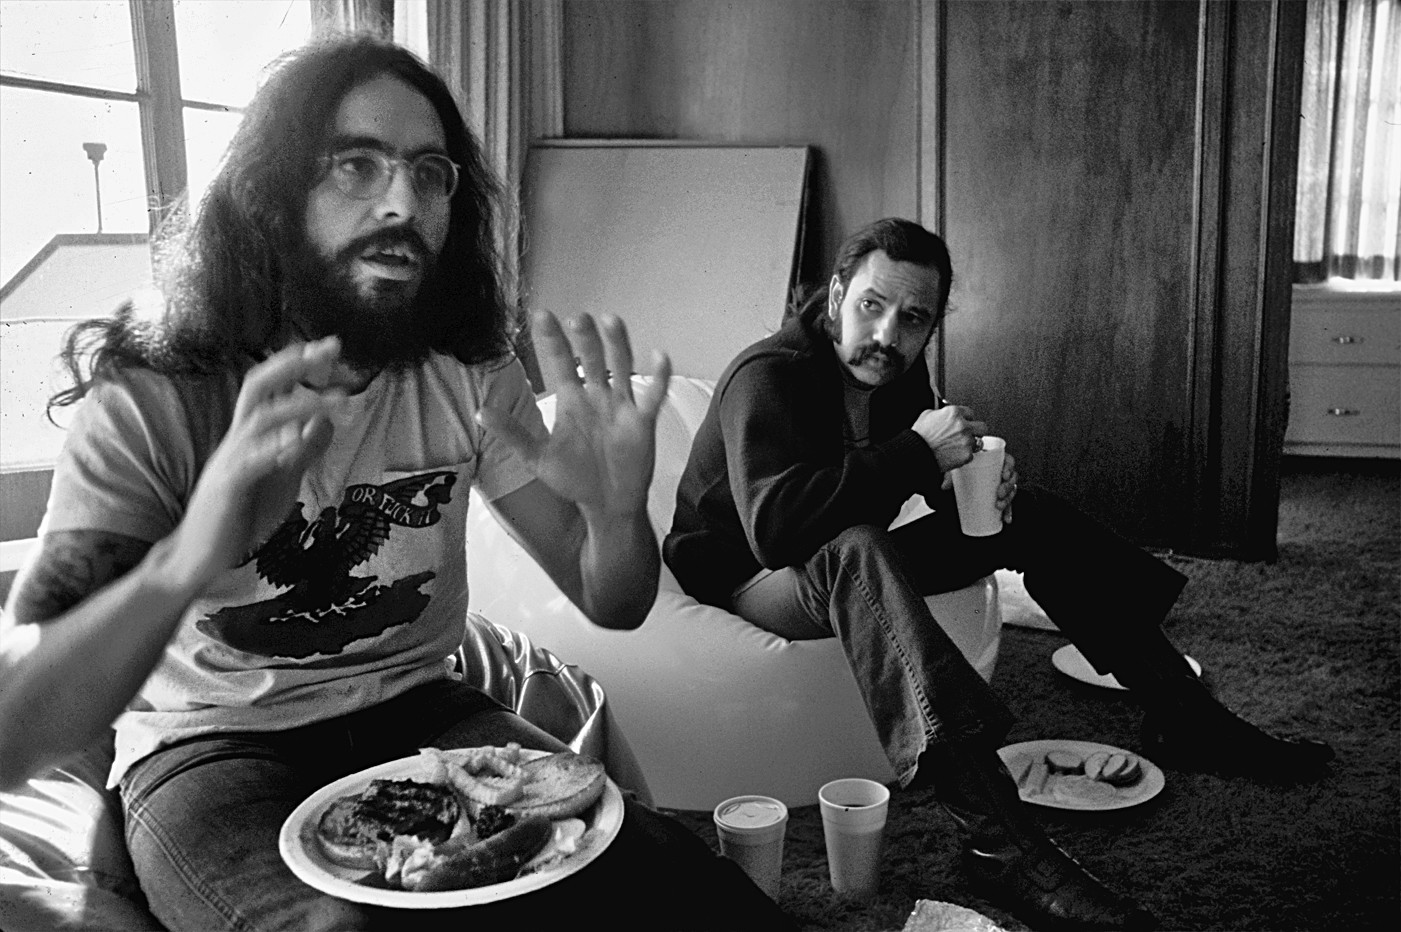 Cheech Marin, right, with Tommy Chong, in the 1970s.